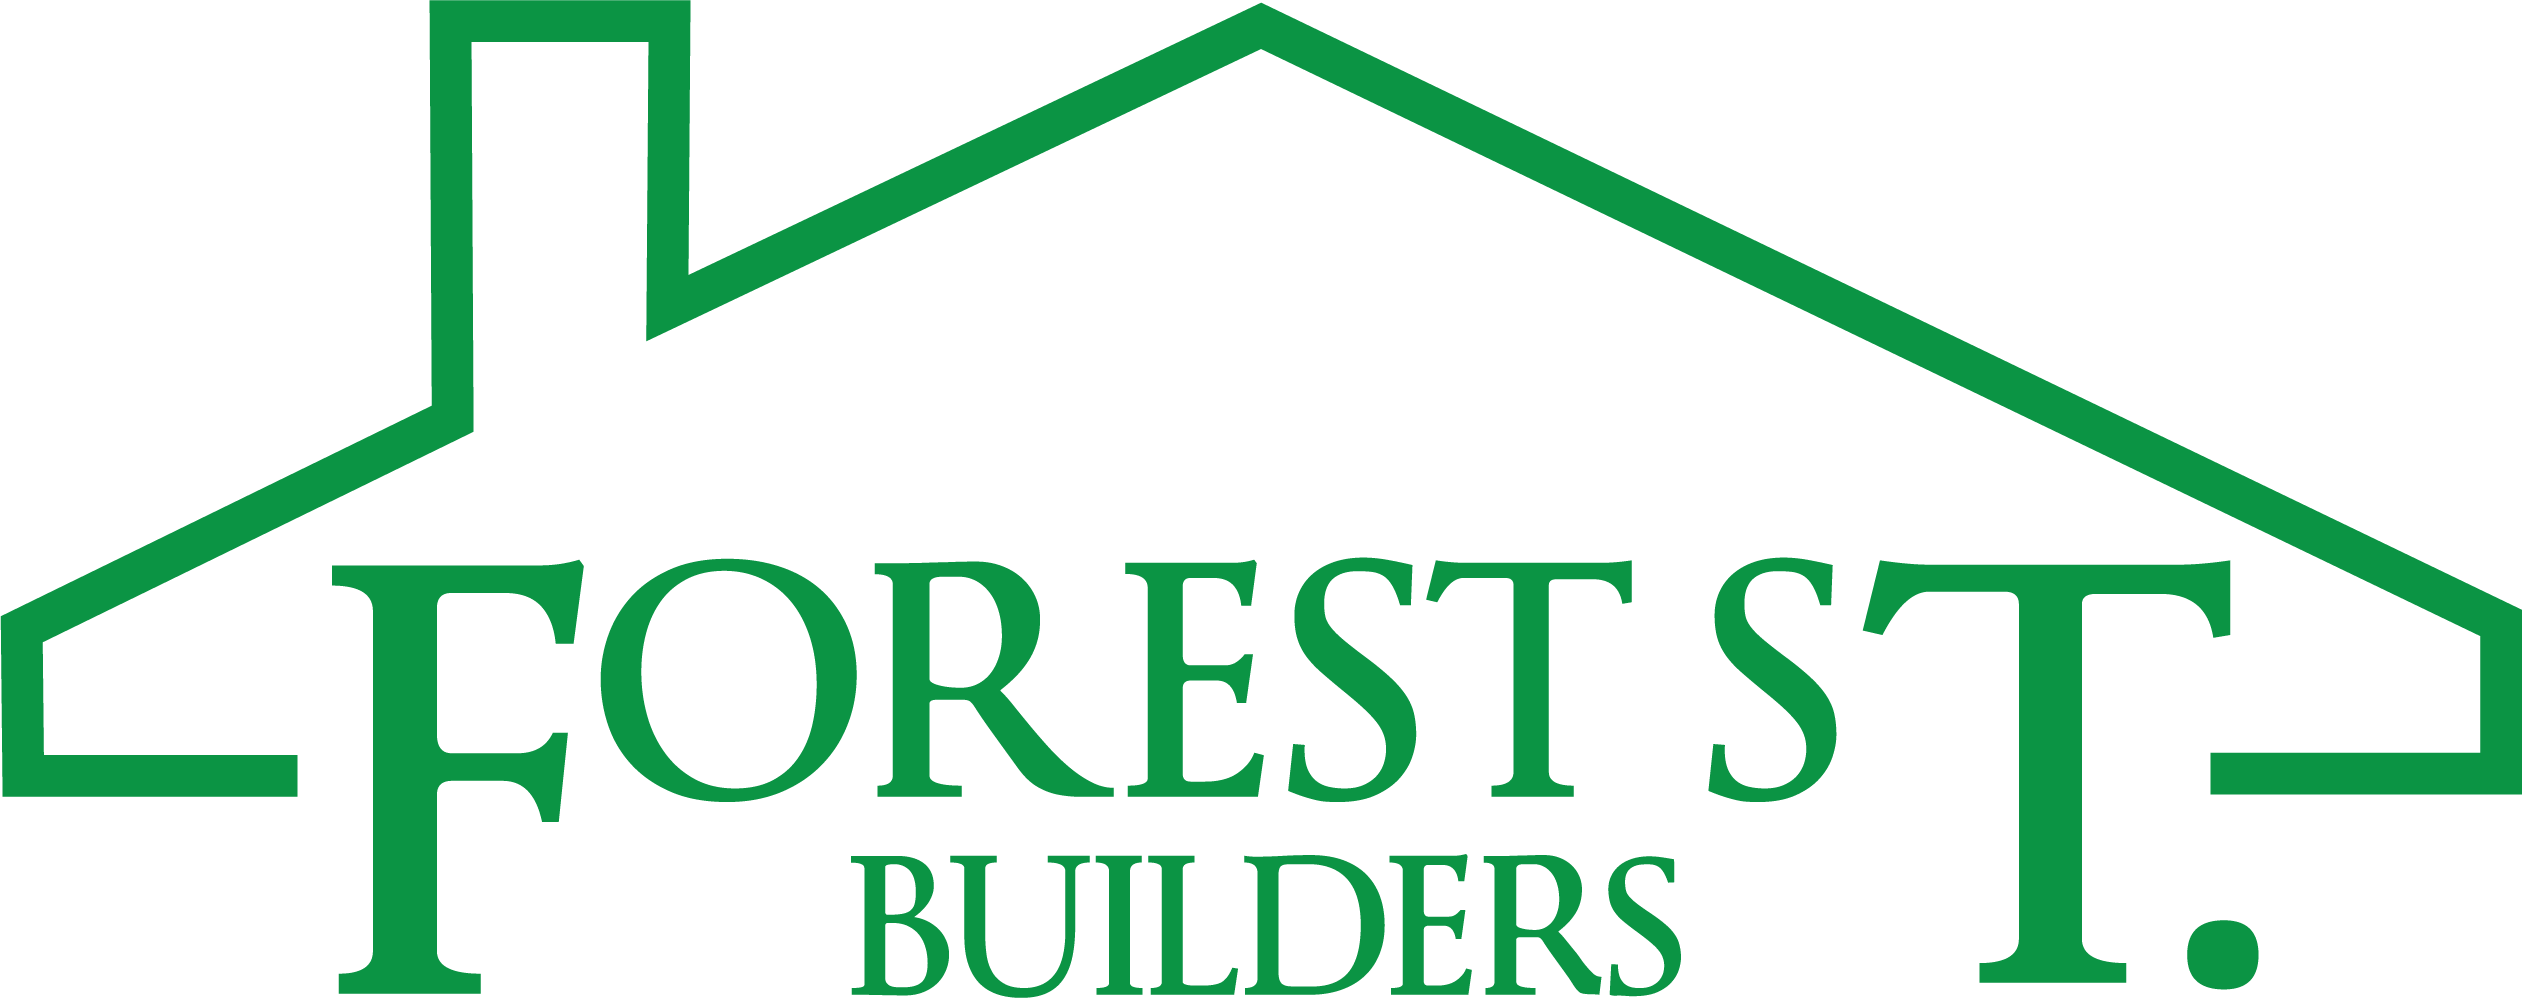 Forest St. Builders